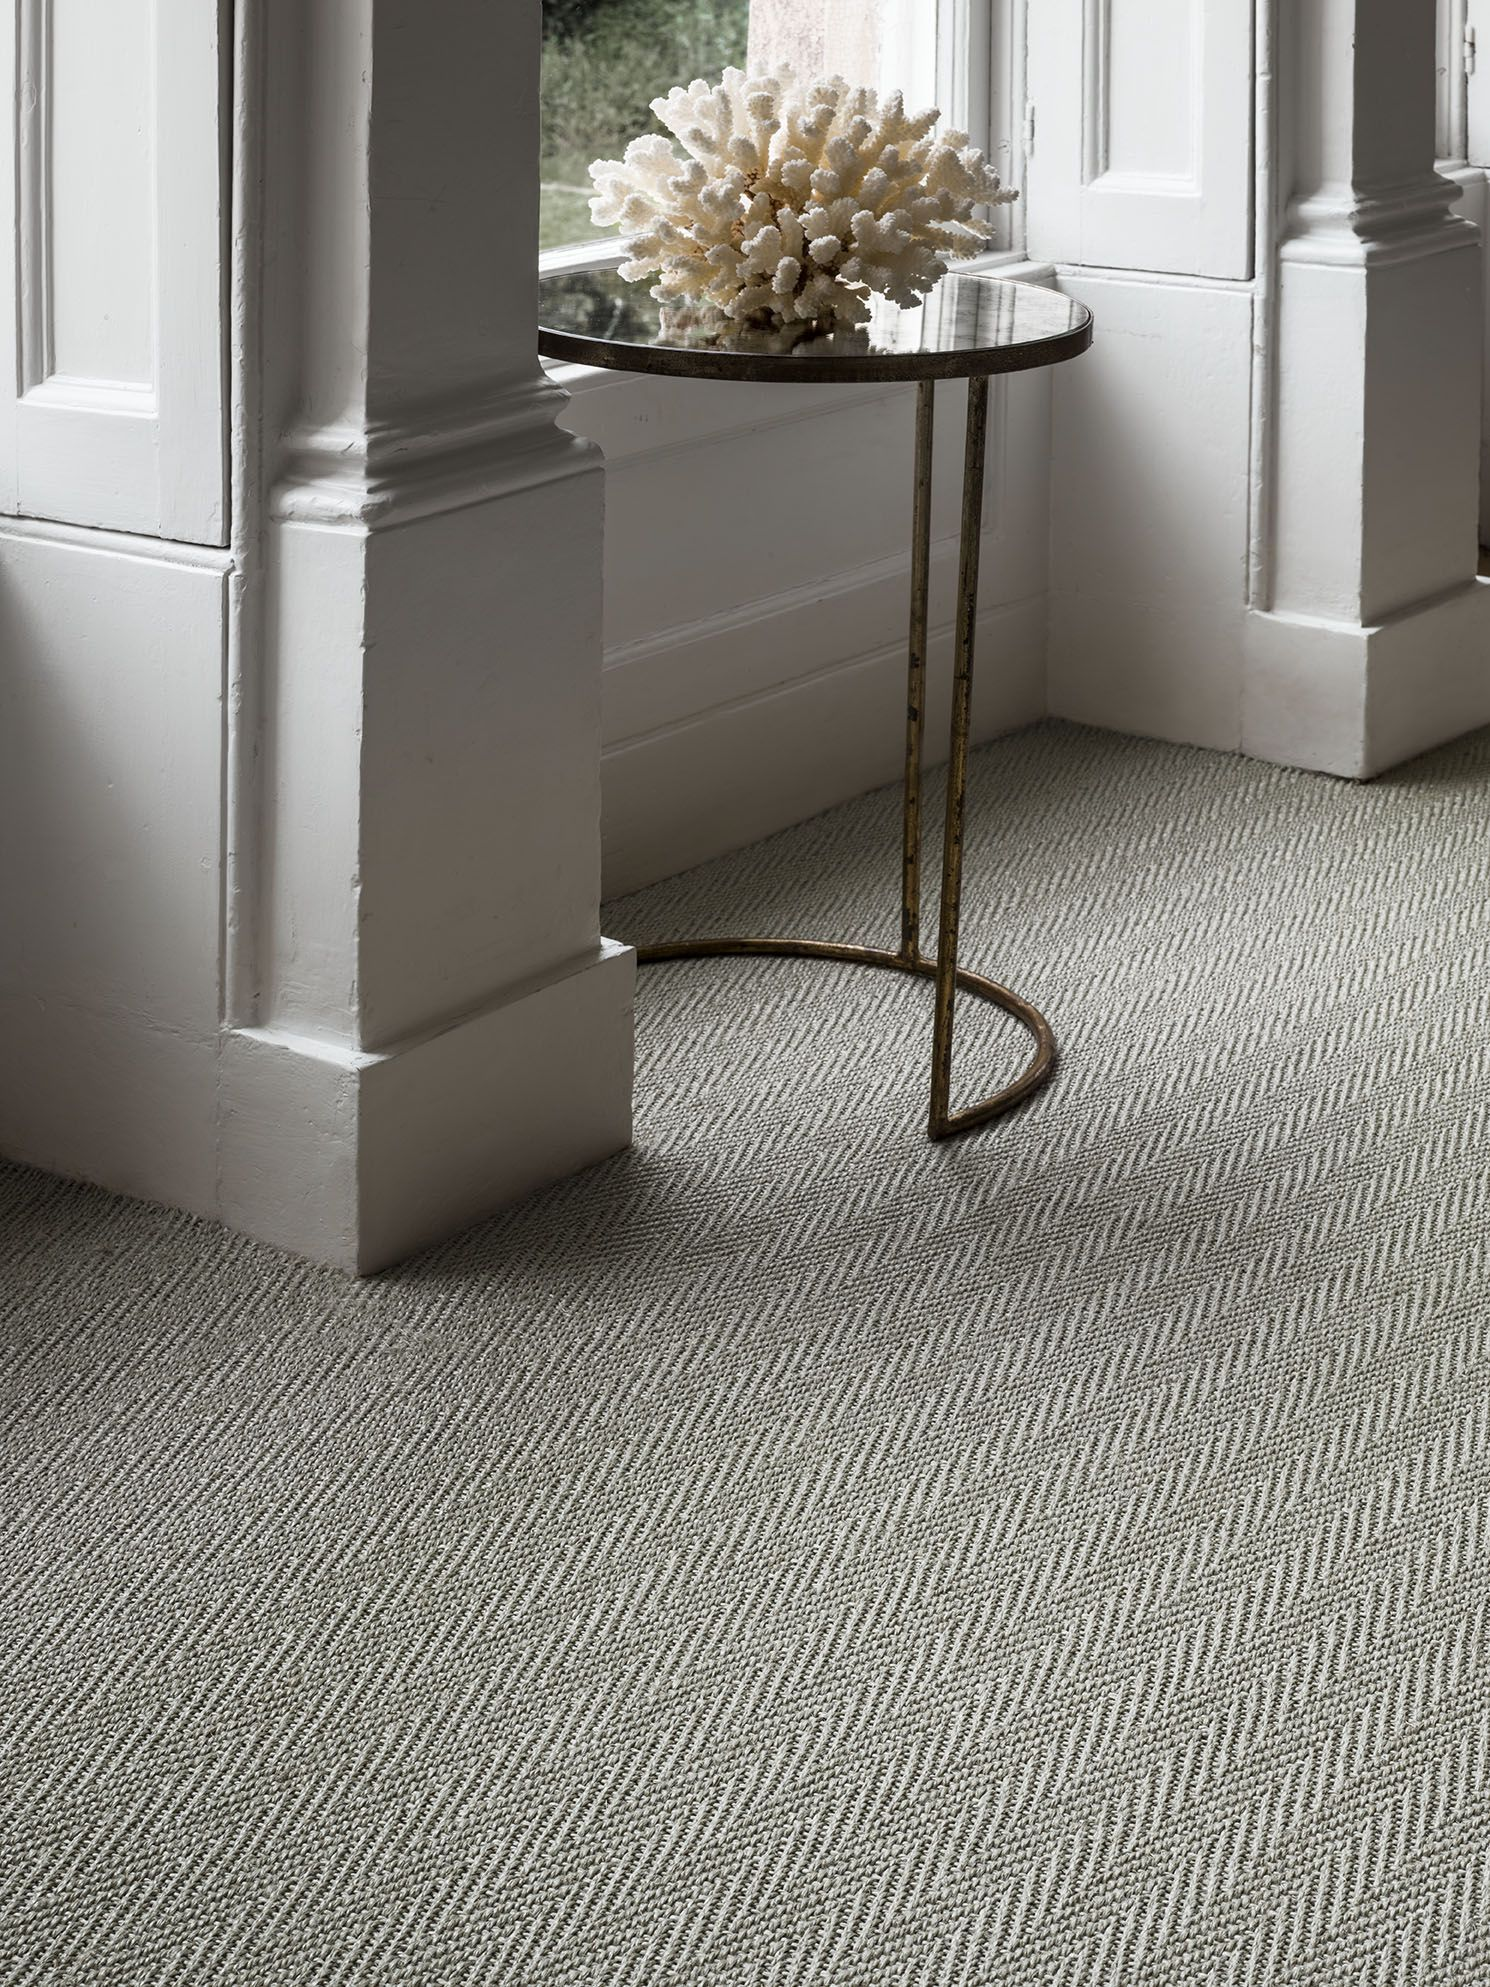 Good Photographs Herringbone Carpet Living Room Thoughts Develop You Prefer These Products We Recommend Just Patterned Carpet Living Room Carpet Carpet Stairs